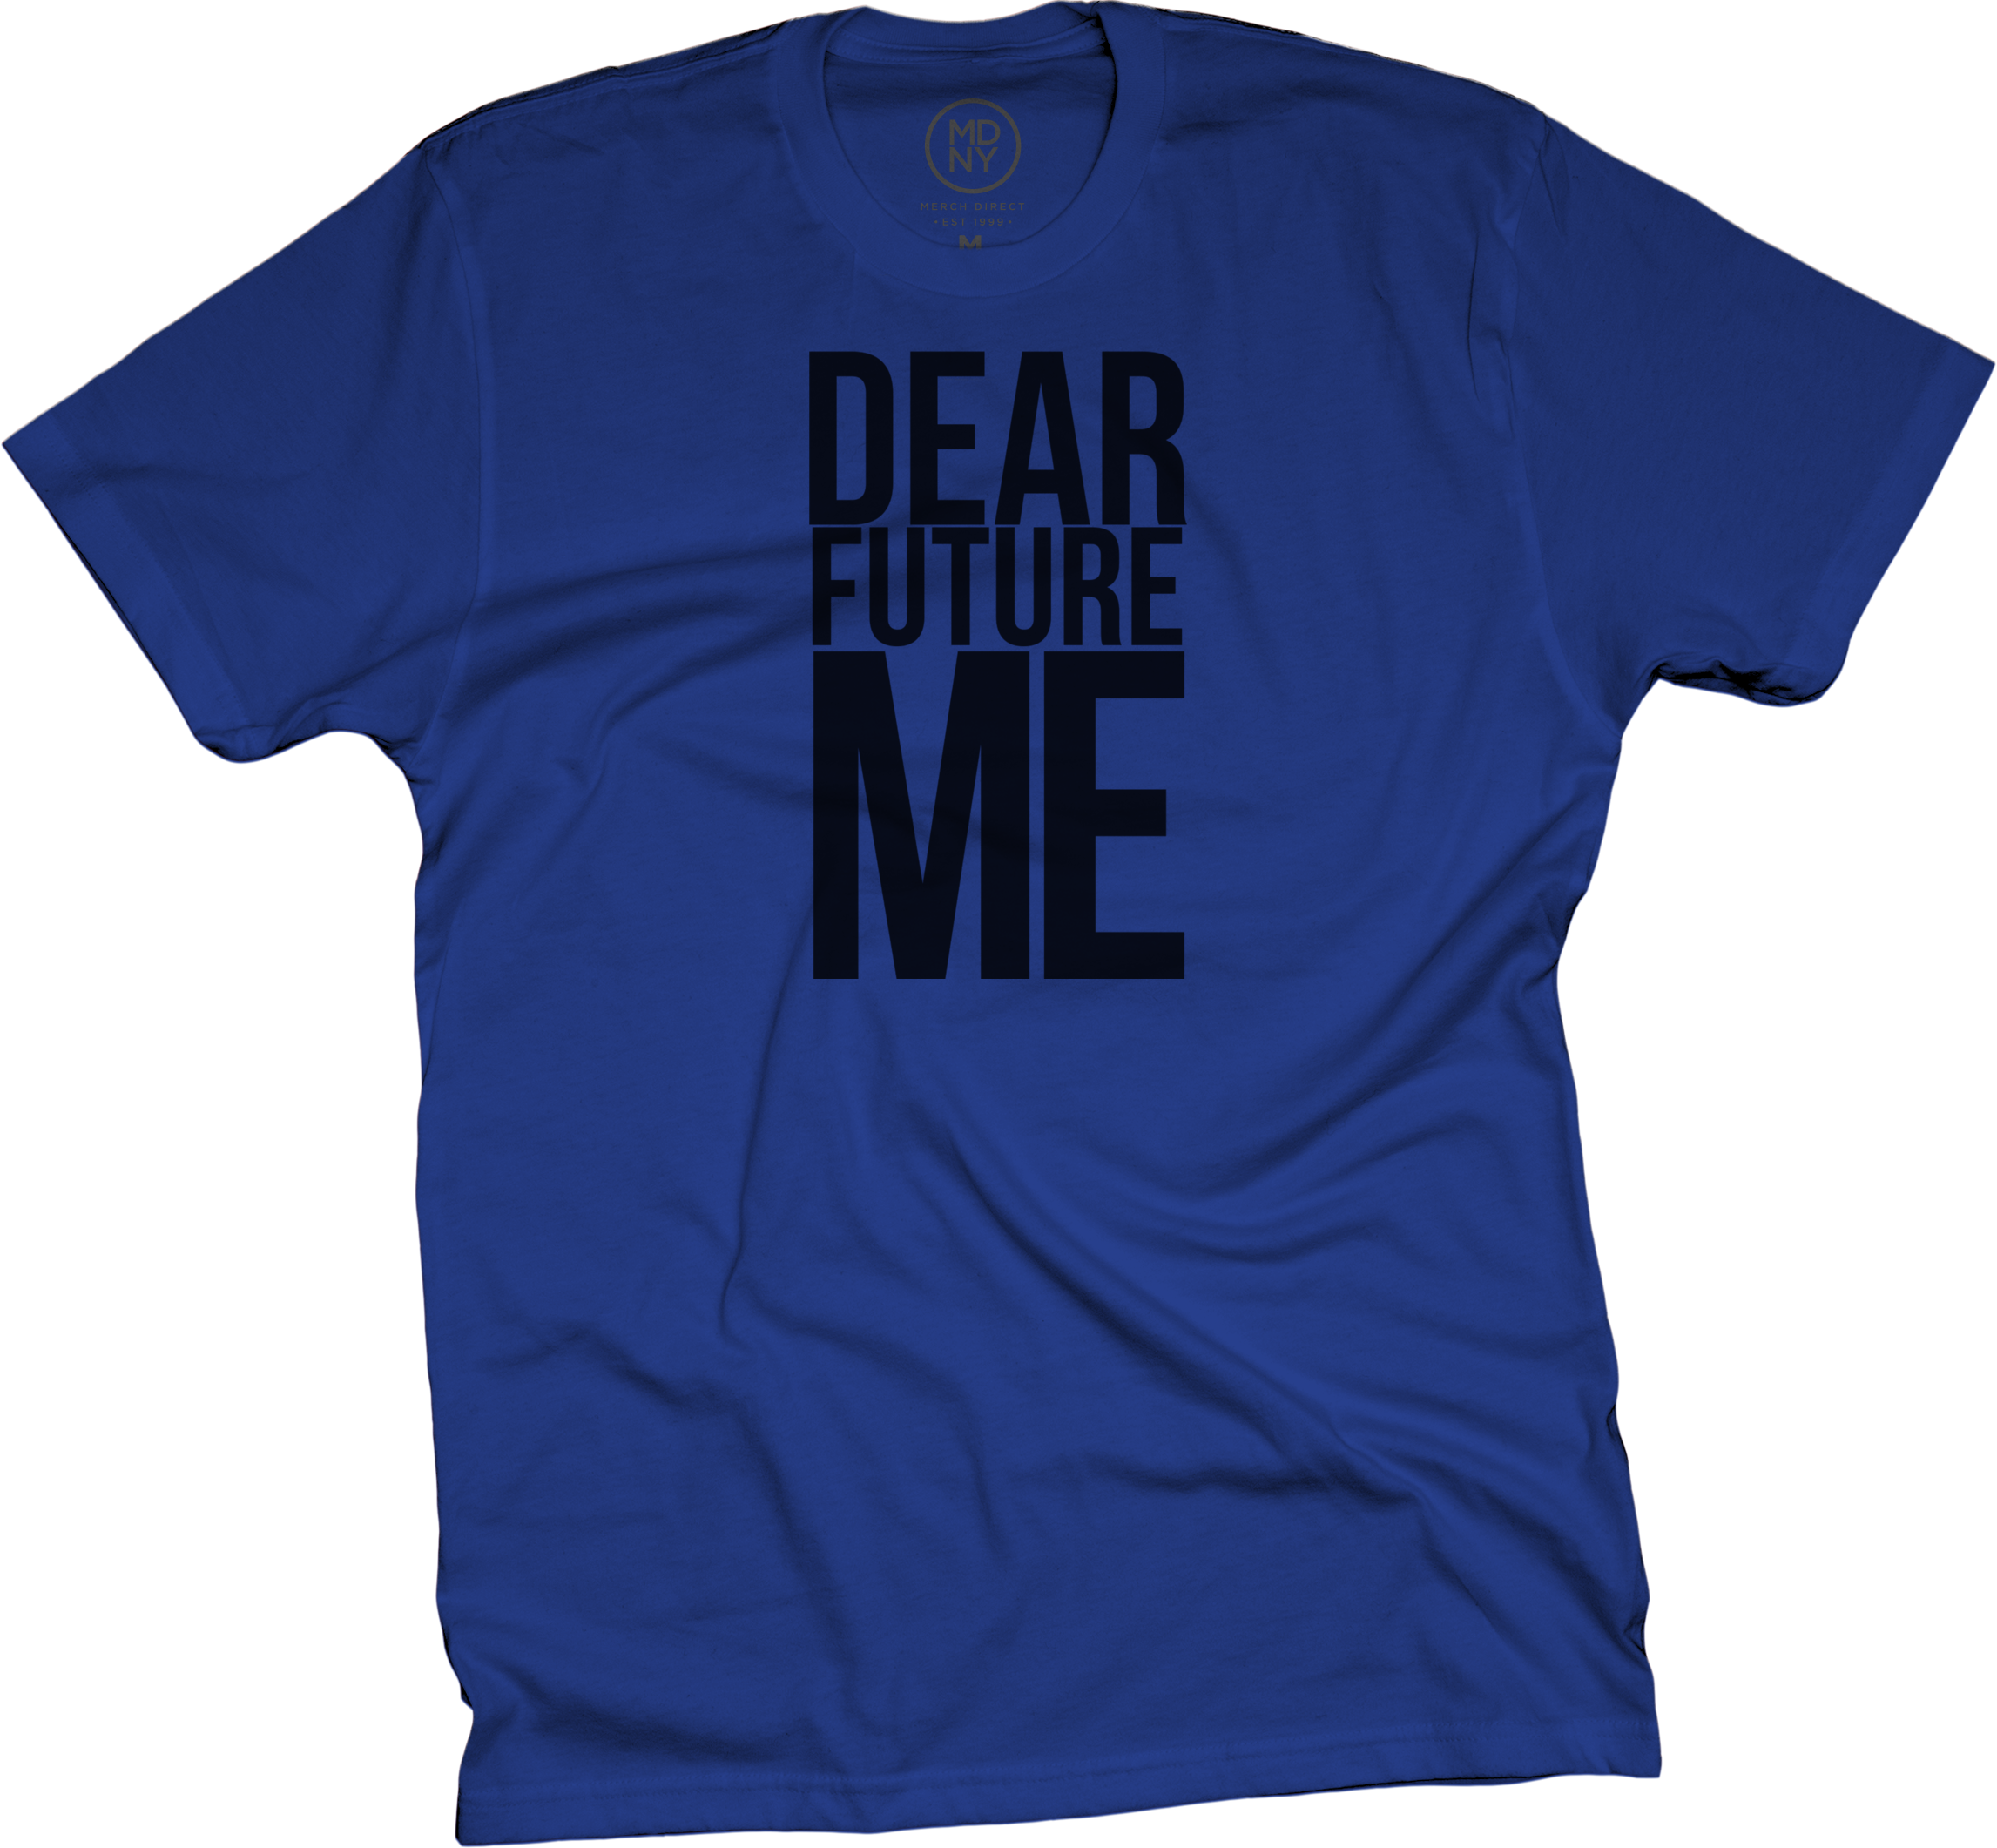 Dear Future Me on Blue T-Shirt